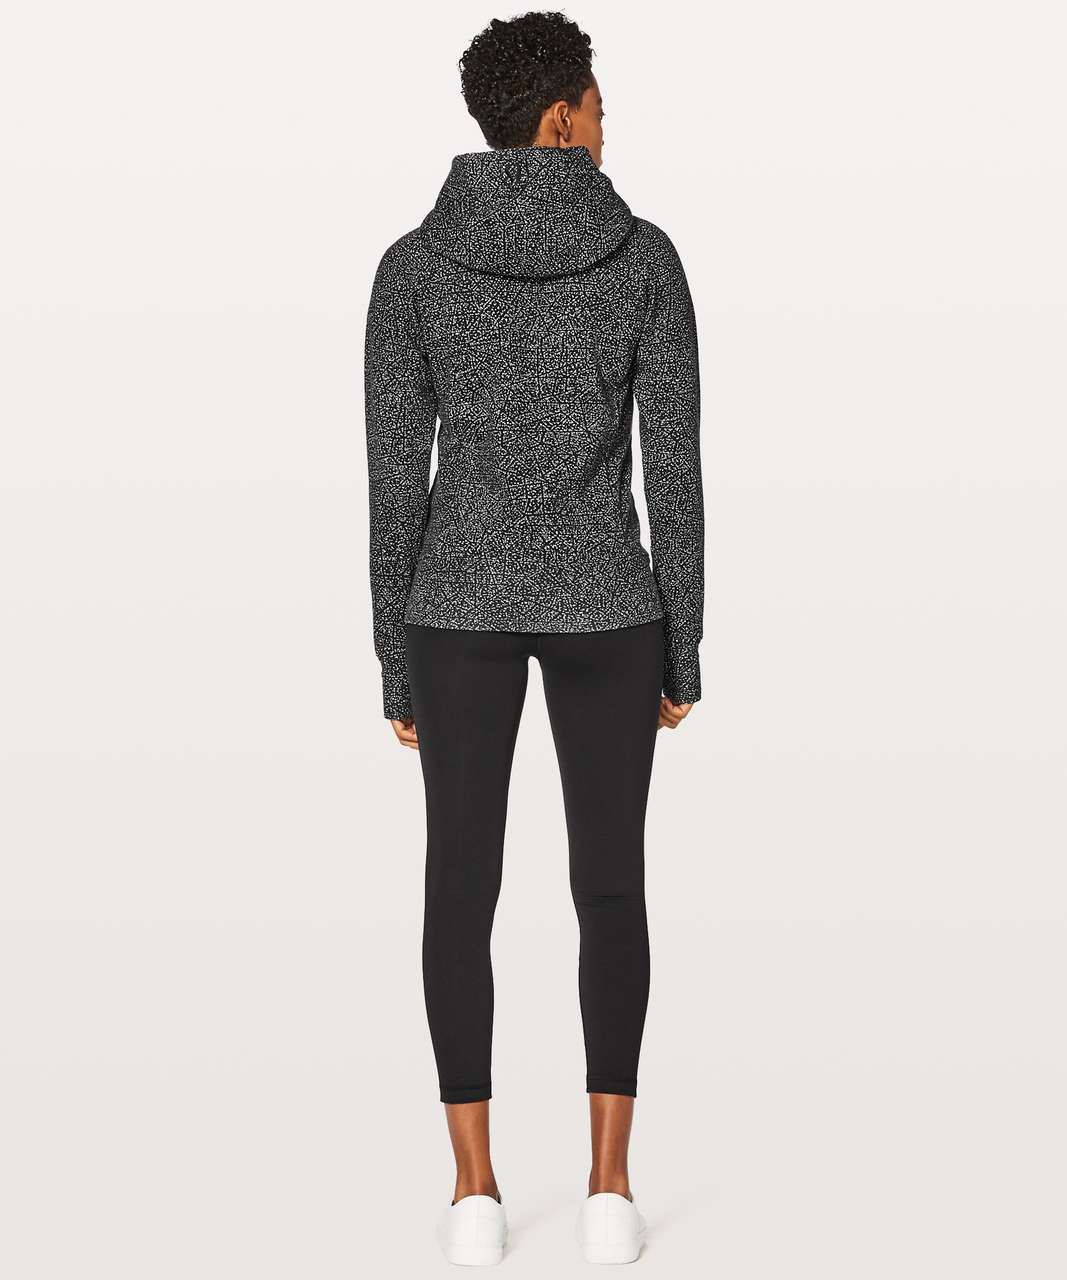 Lululemon Scuba Hoodie Light Cotton Fleece - Night View White Black